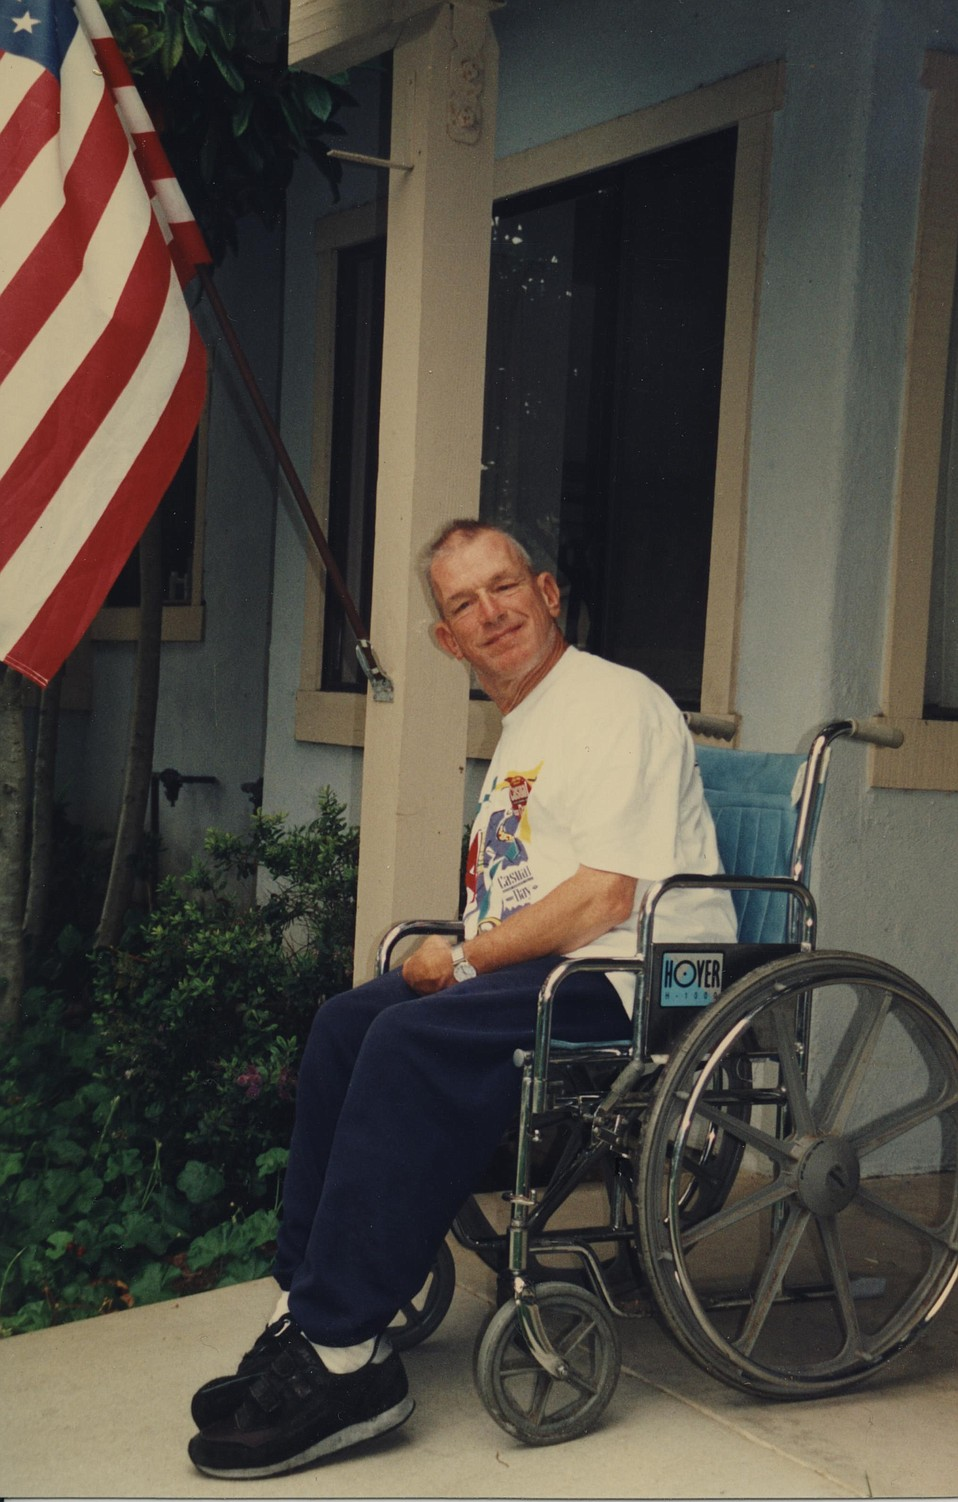 When he wasn't out working for United Cerebral Palsy or raising a ruckus at UCSB sports events, Phil Womble welcomed visitors to his apartment, where the Star-Spangled Banner was always displayed.